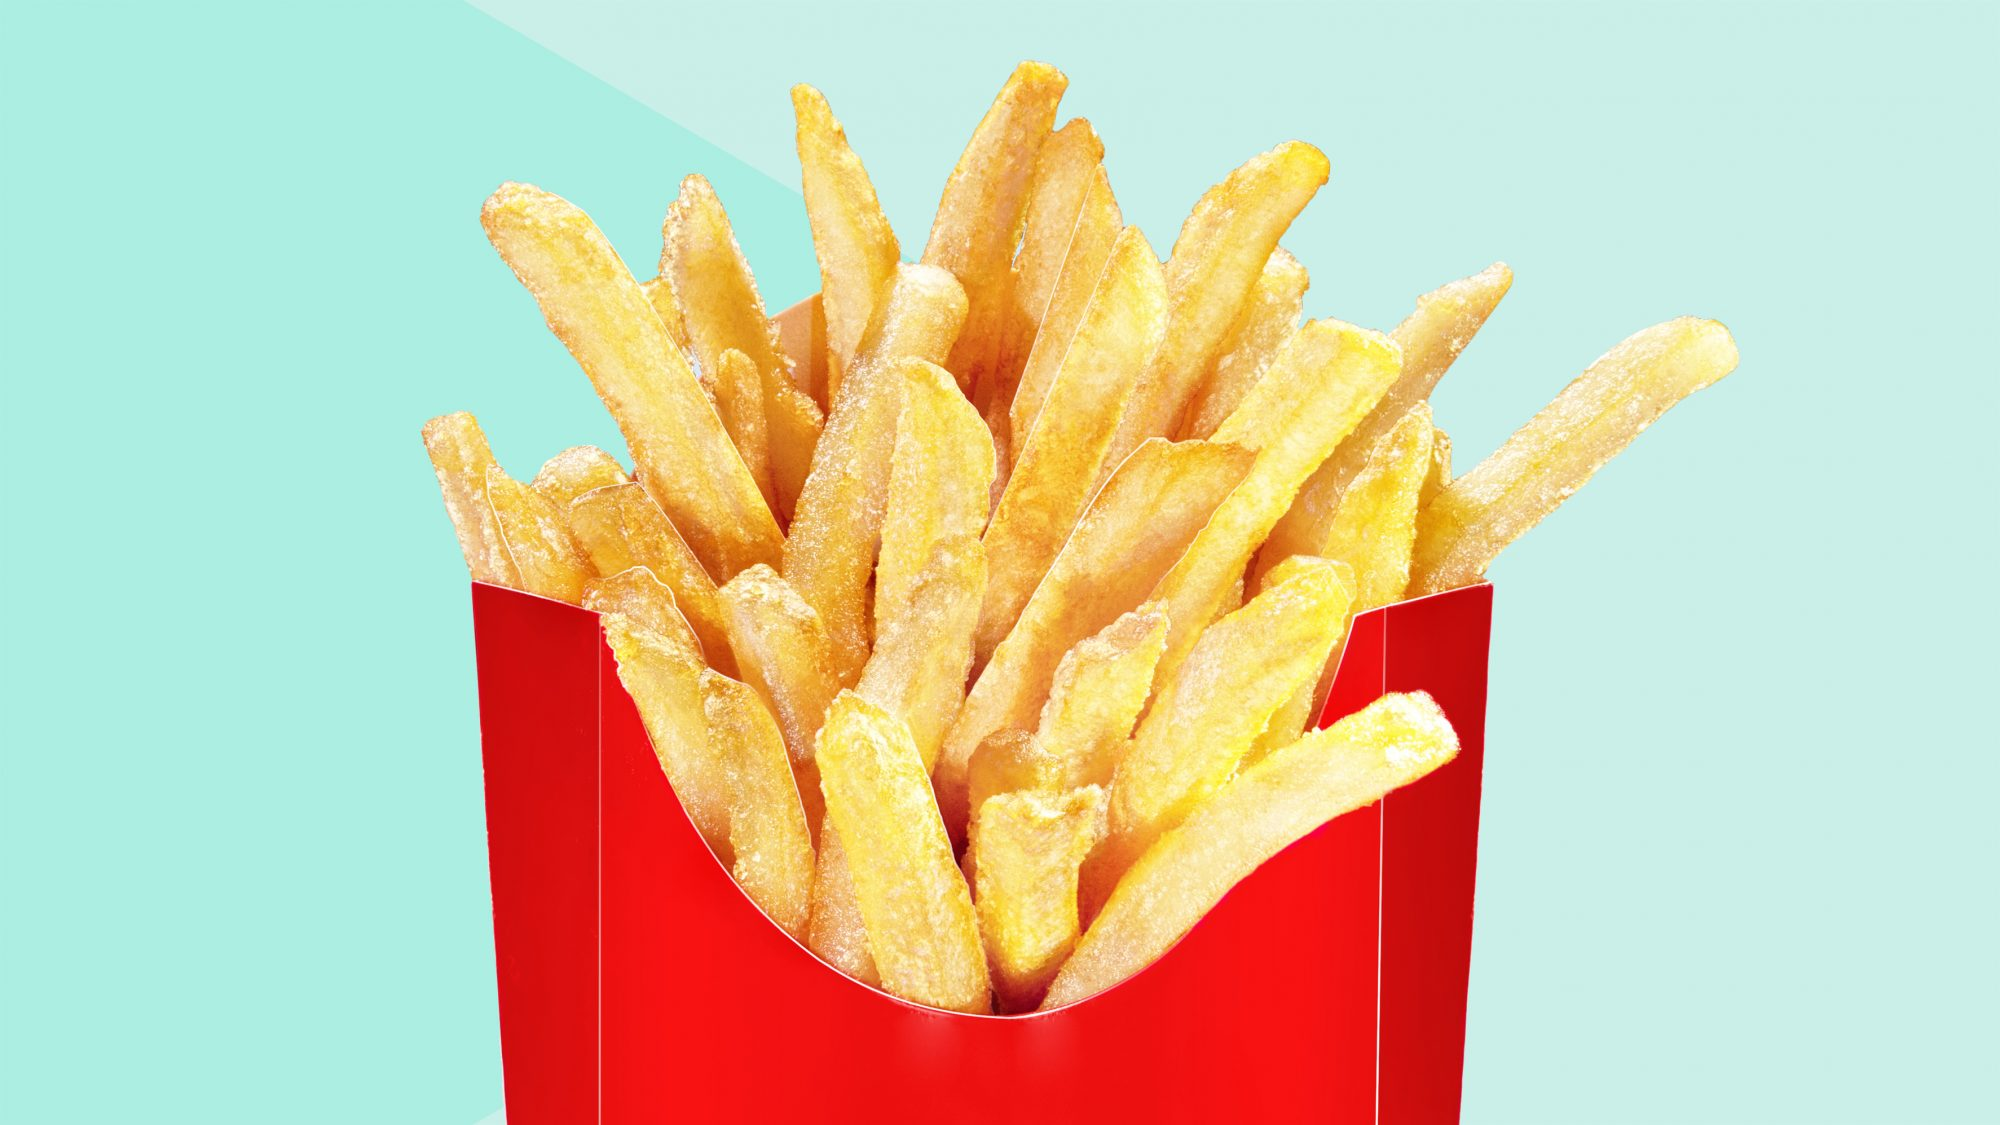 inflammation-food-fries